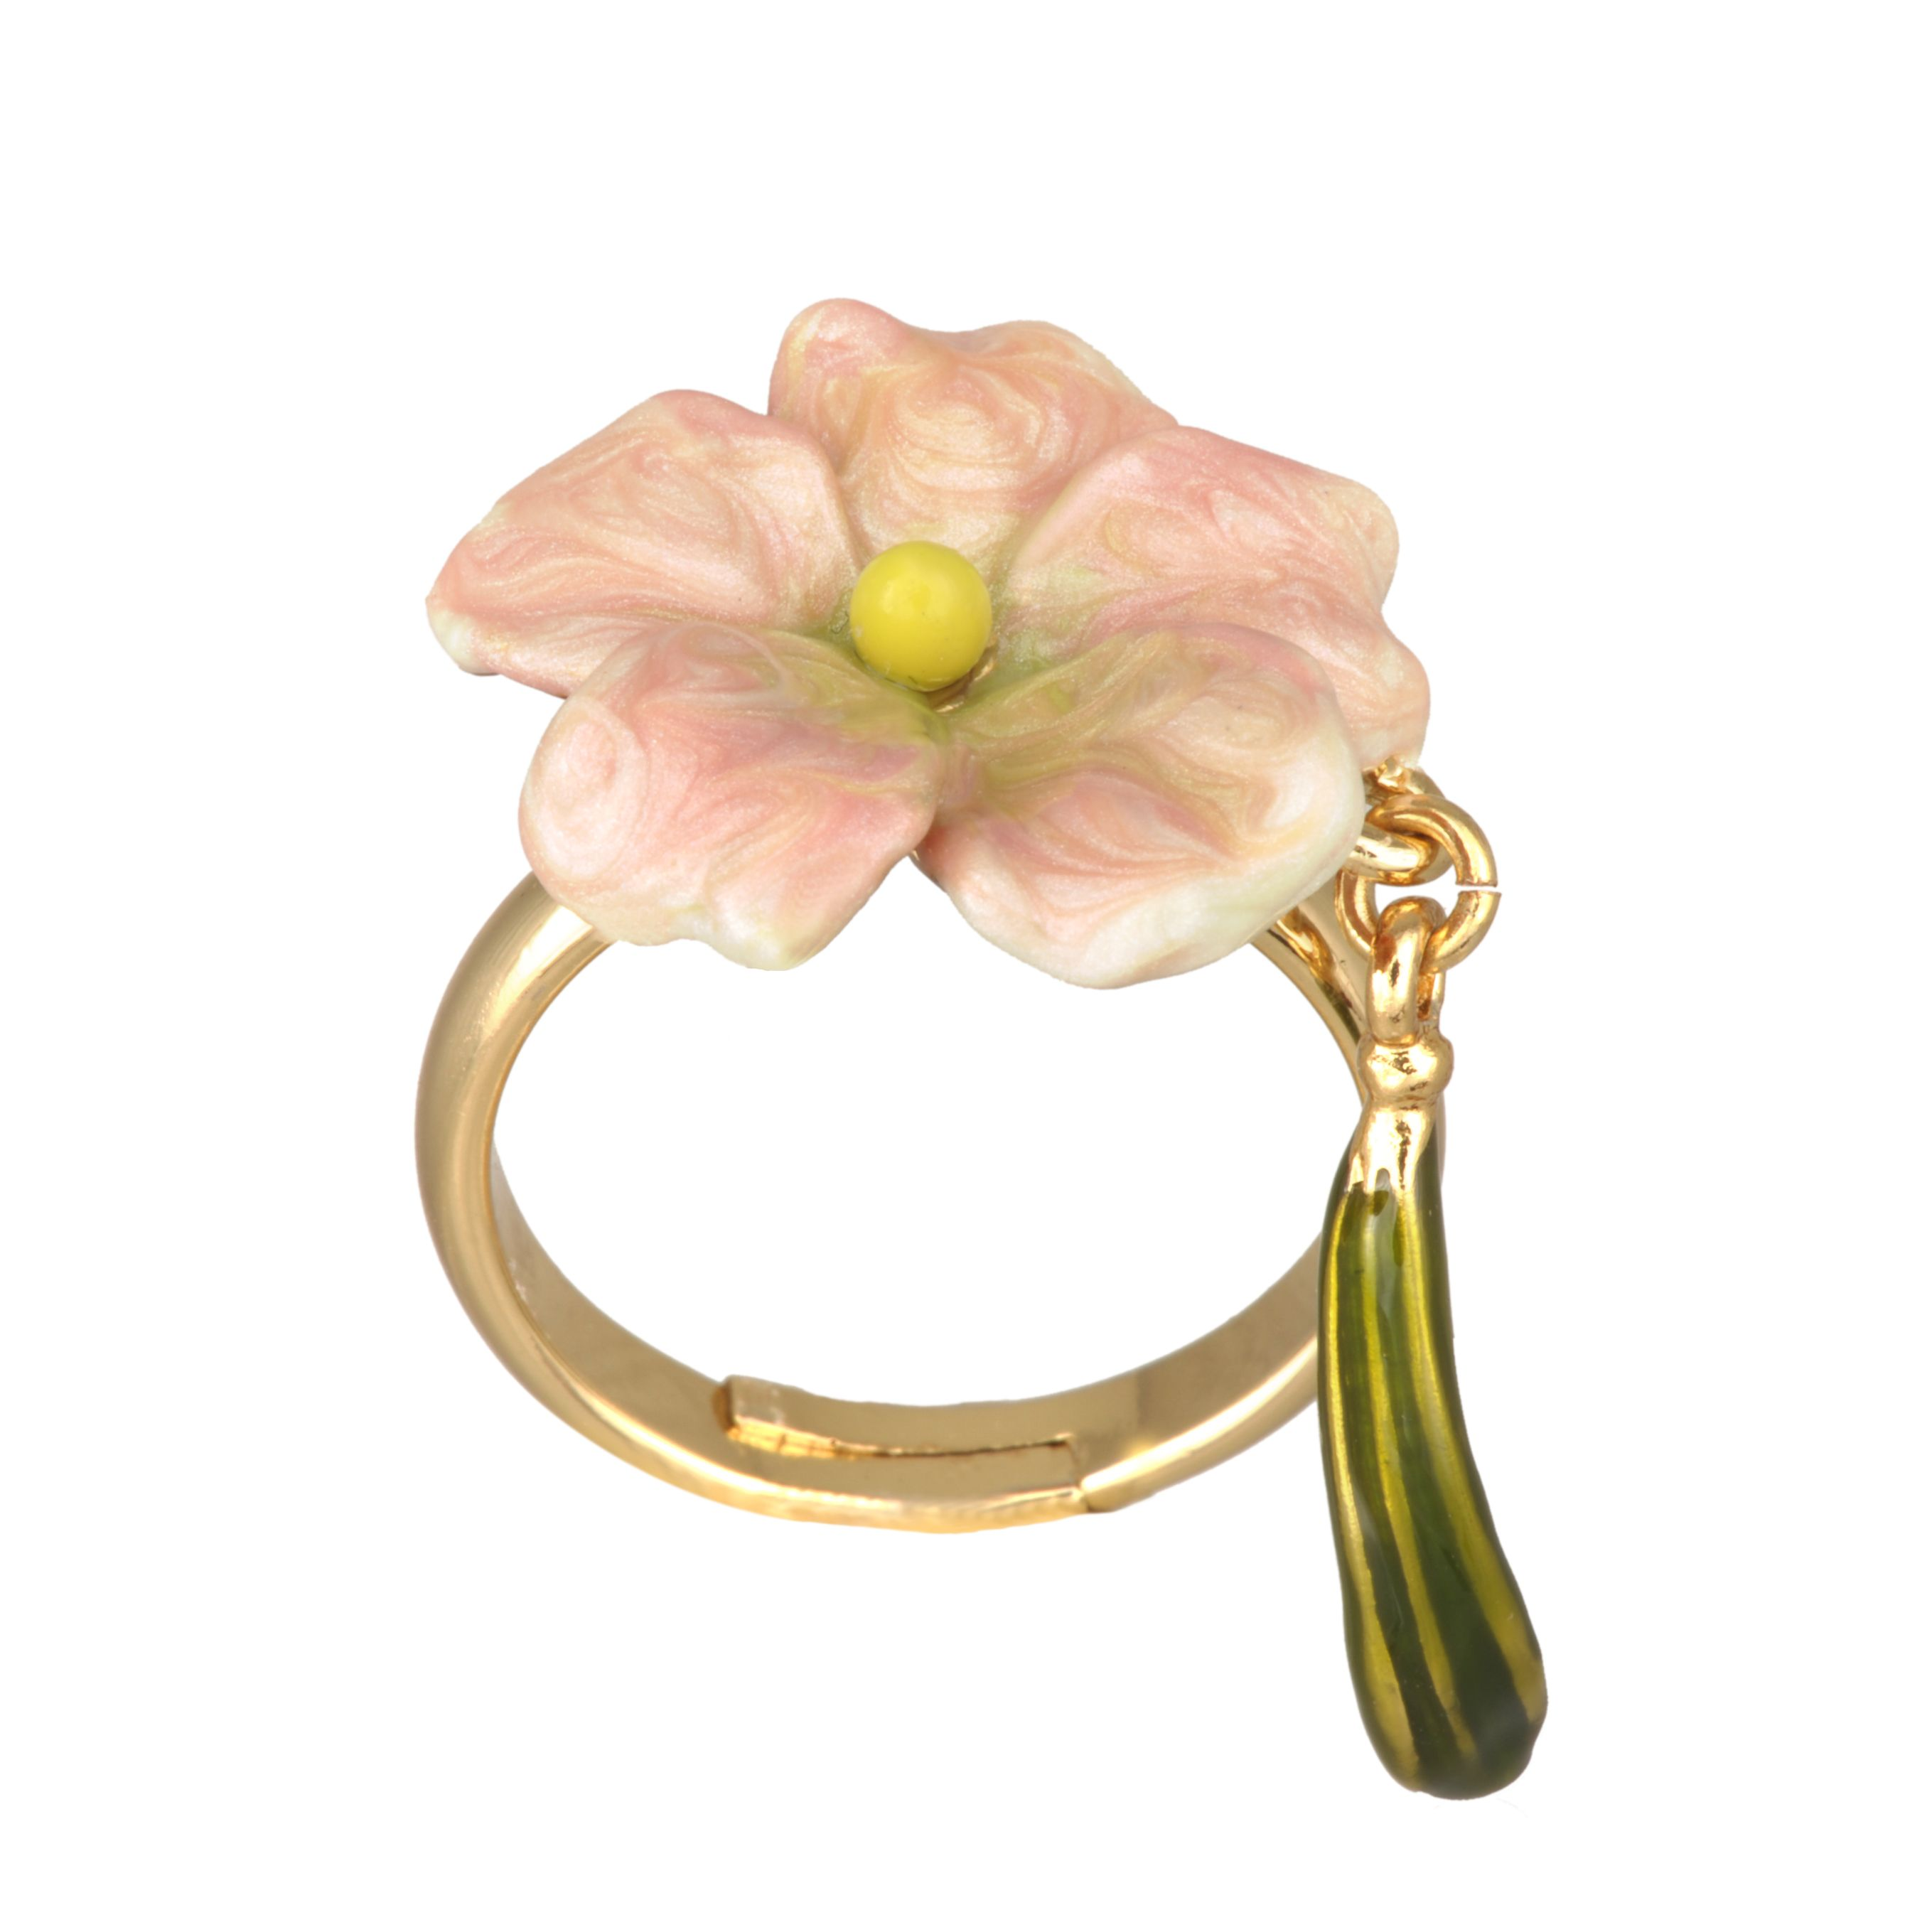 Jardins secrets ring